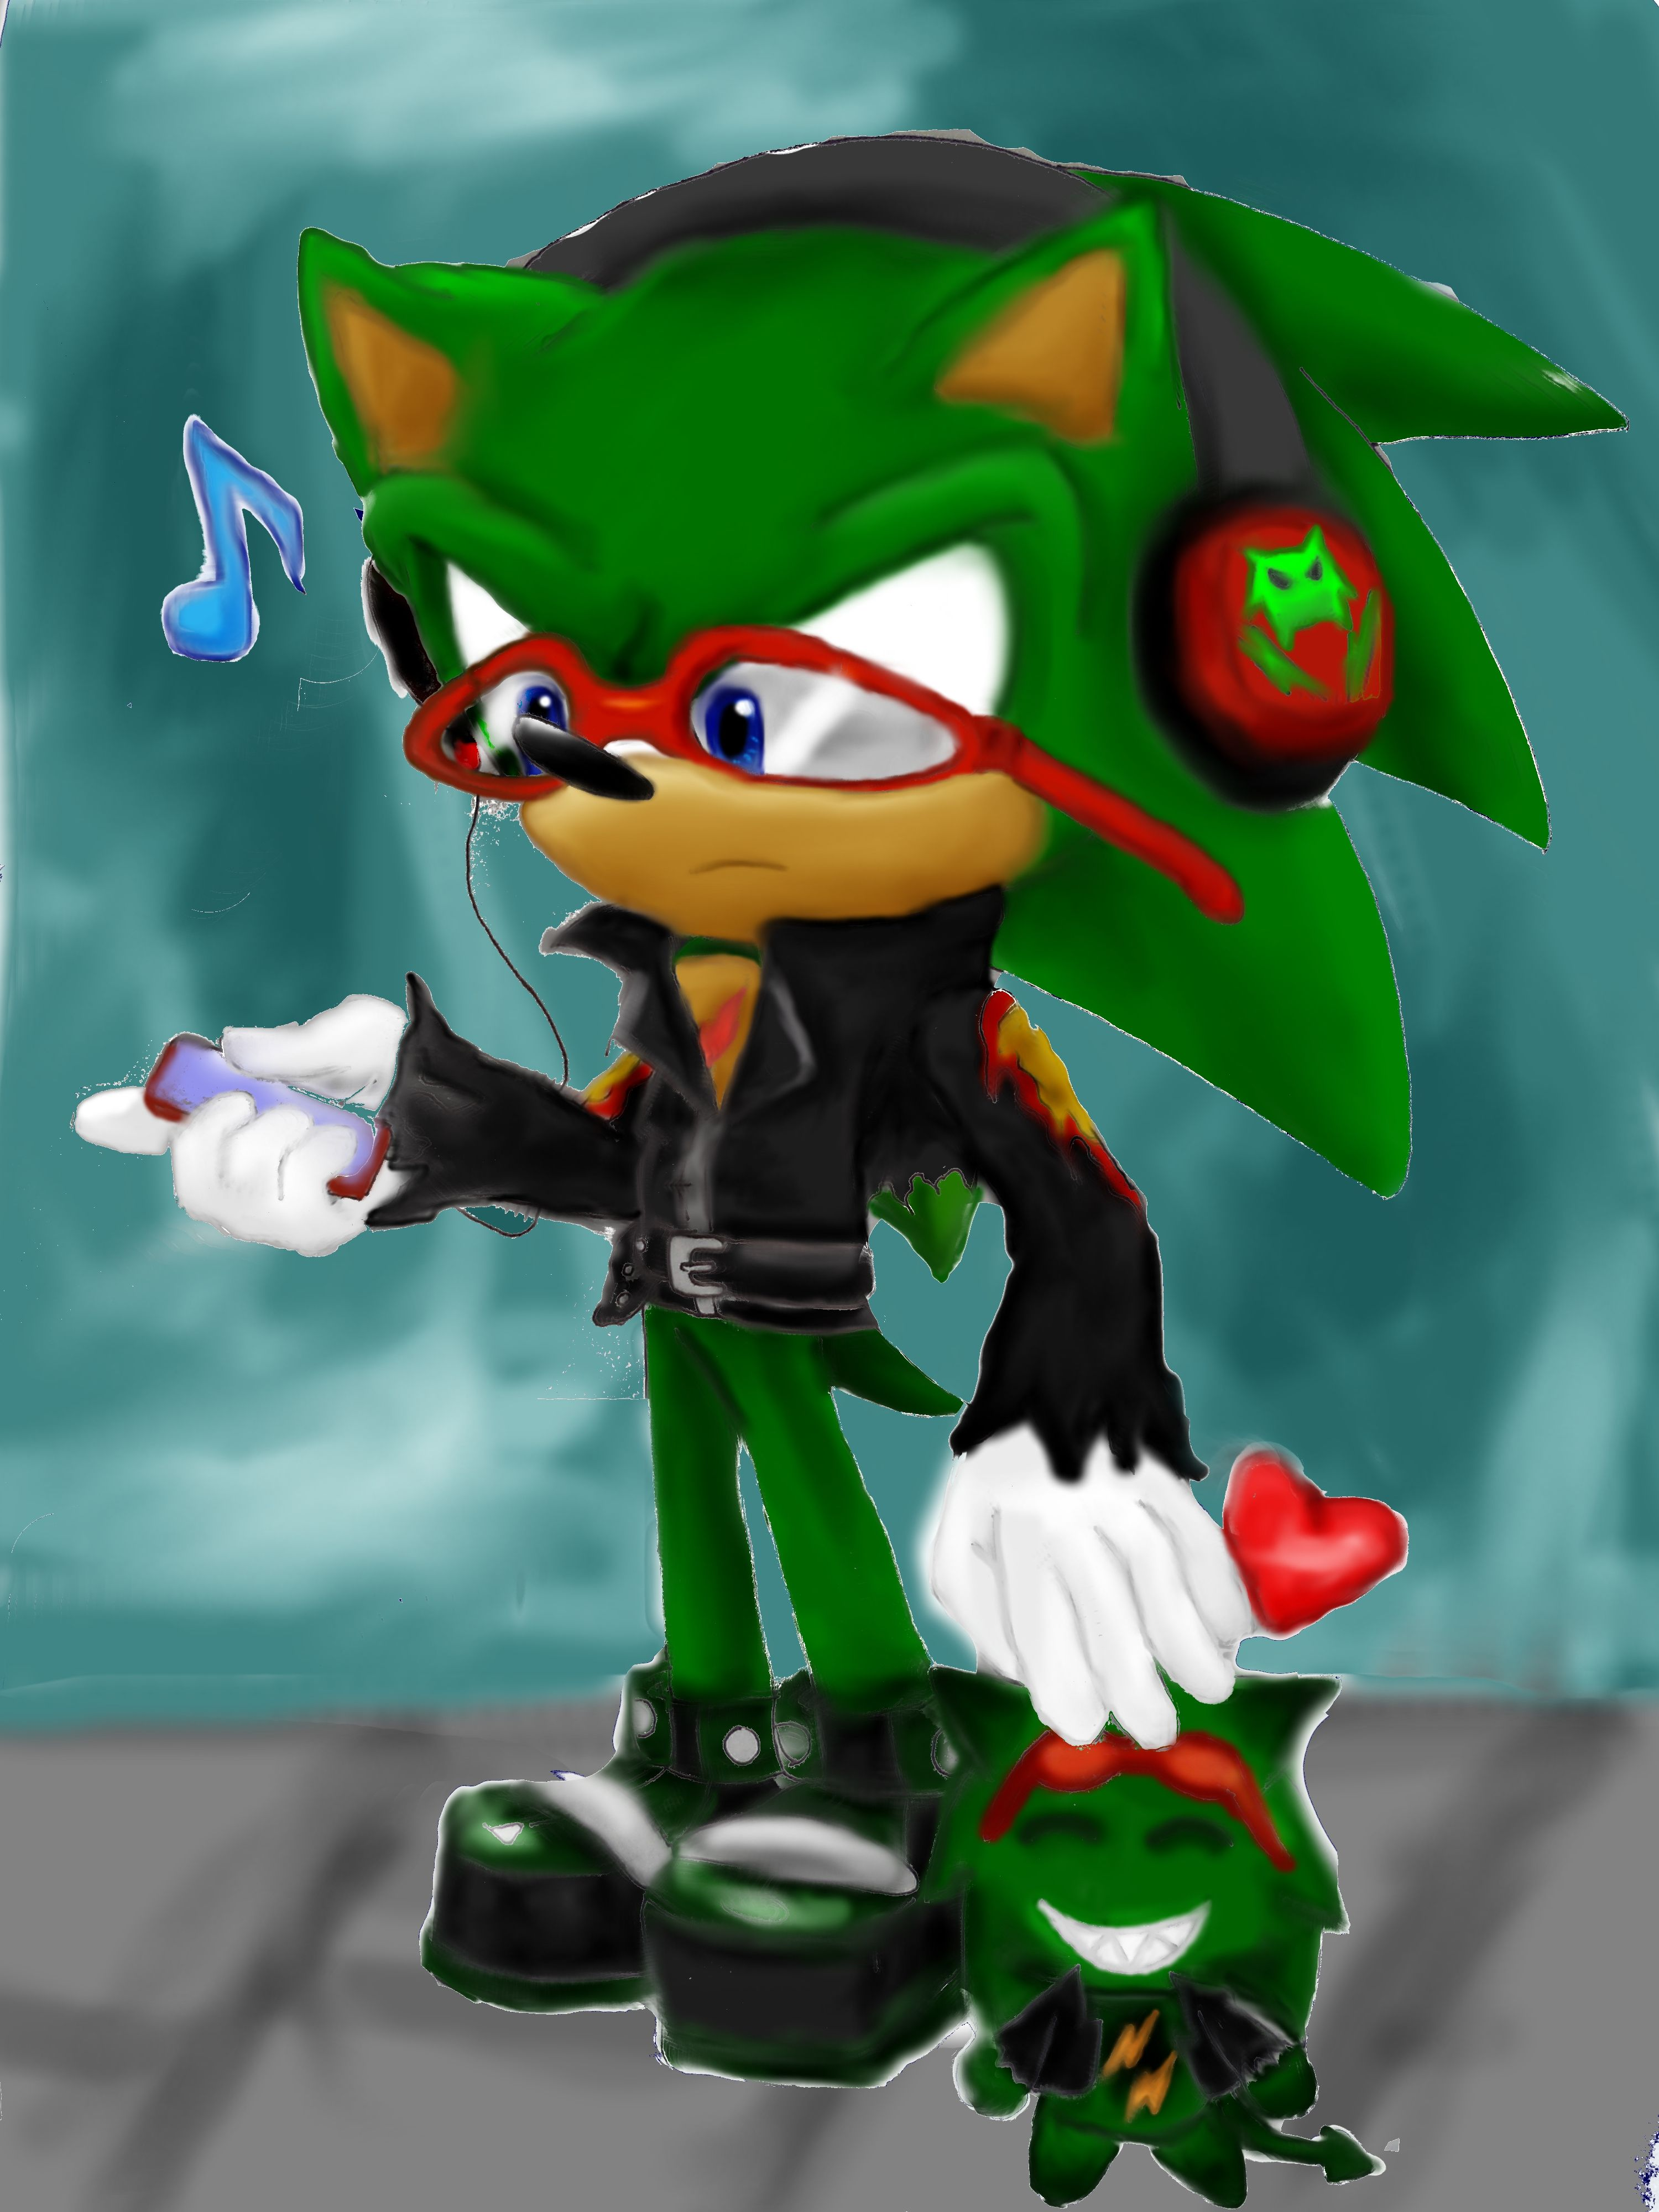 Scourge The Hedgehog And His Chao Listening To Music With His Headphones Sonic The Hedgehog S Evil Twin From Another Dimension